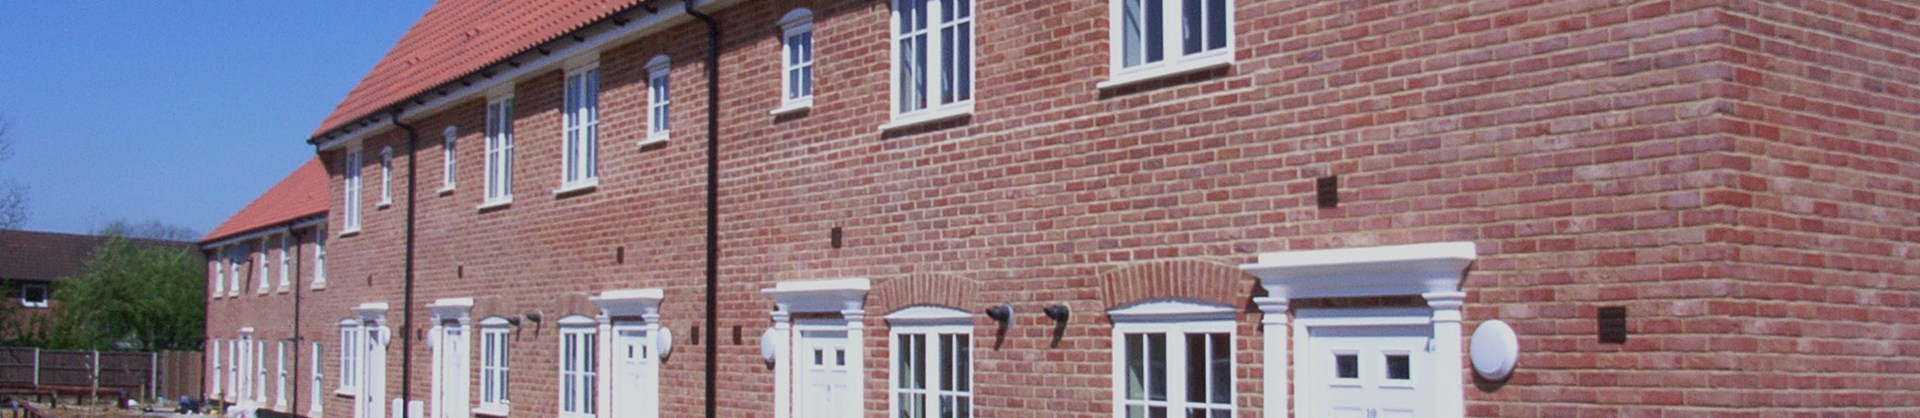 Shared Ownership Flagship Homes